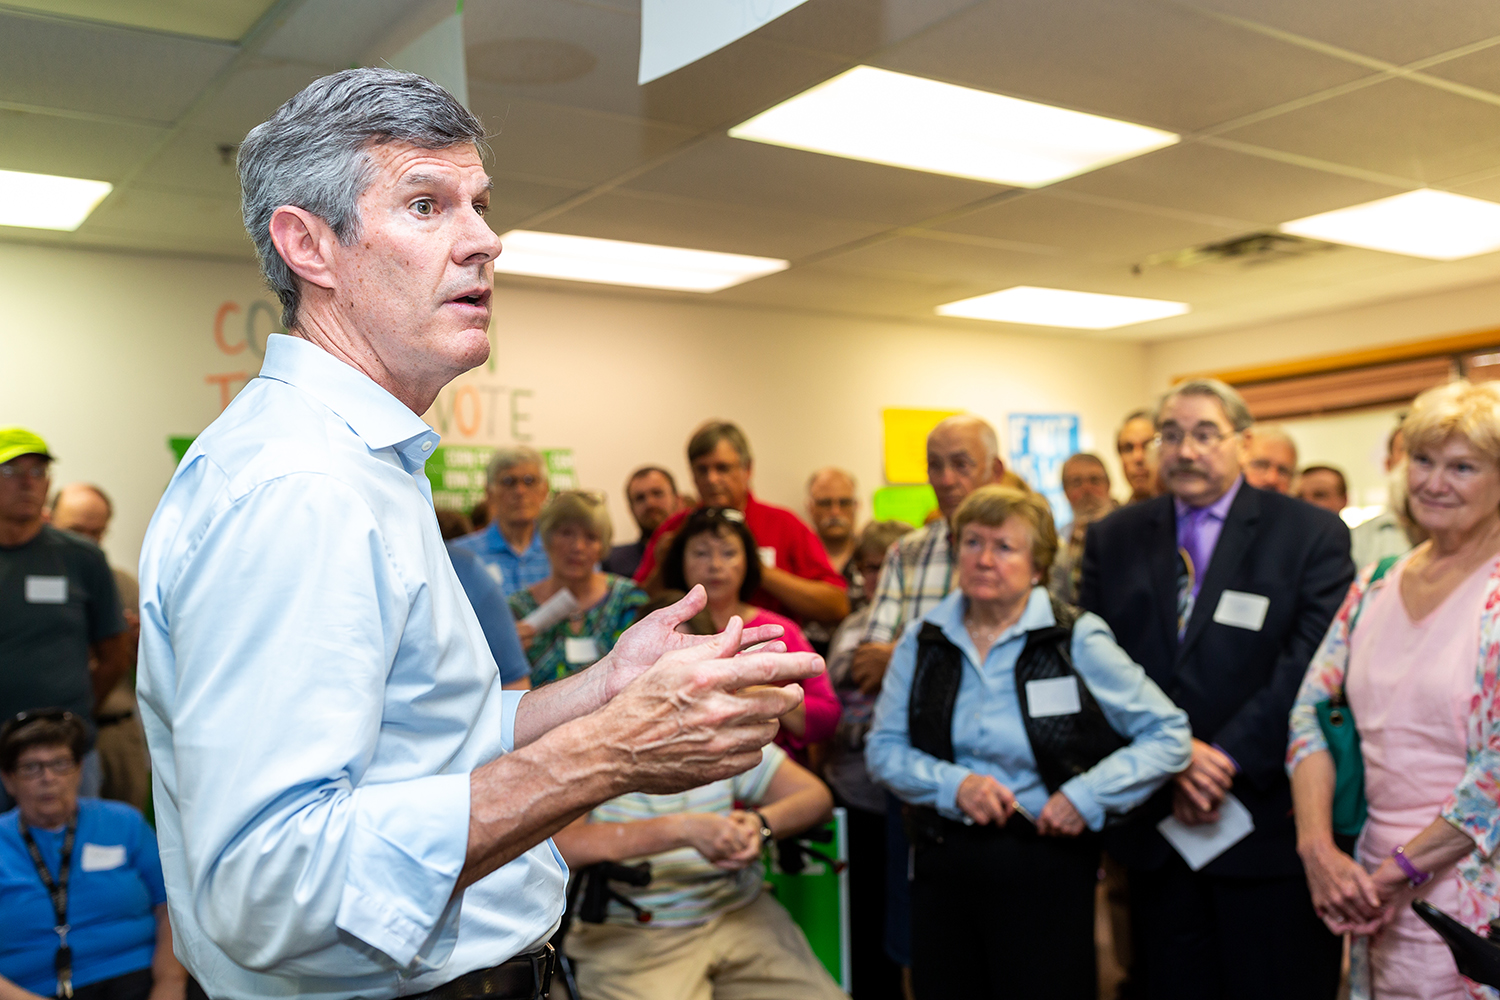 Fred Hubbell, the Democratic nominee for governor, speaks to supporters in Iowa City on Wednesday, Sept. 12, 2018.